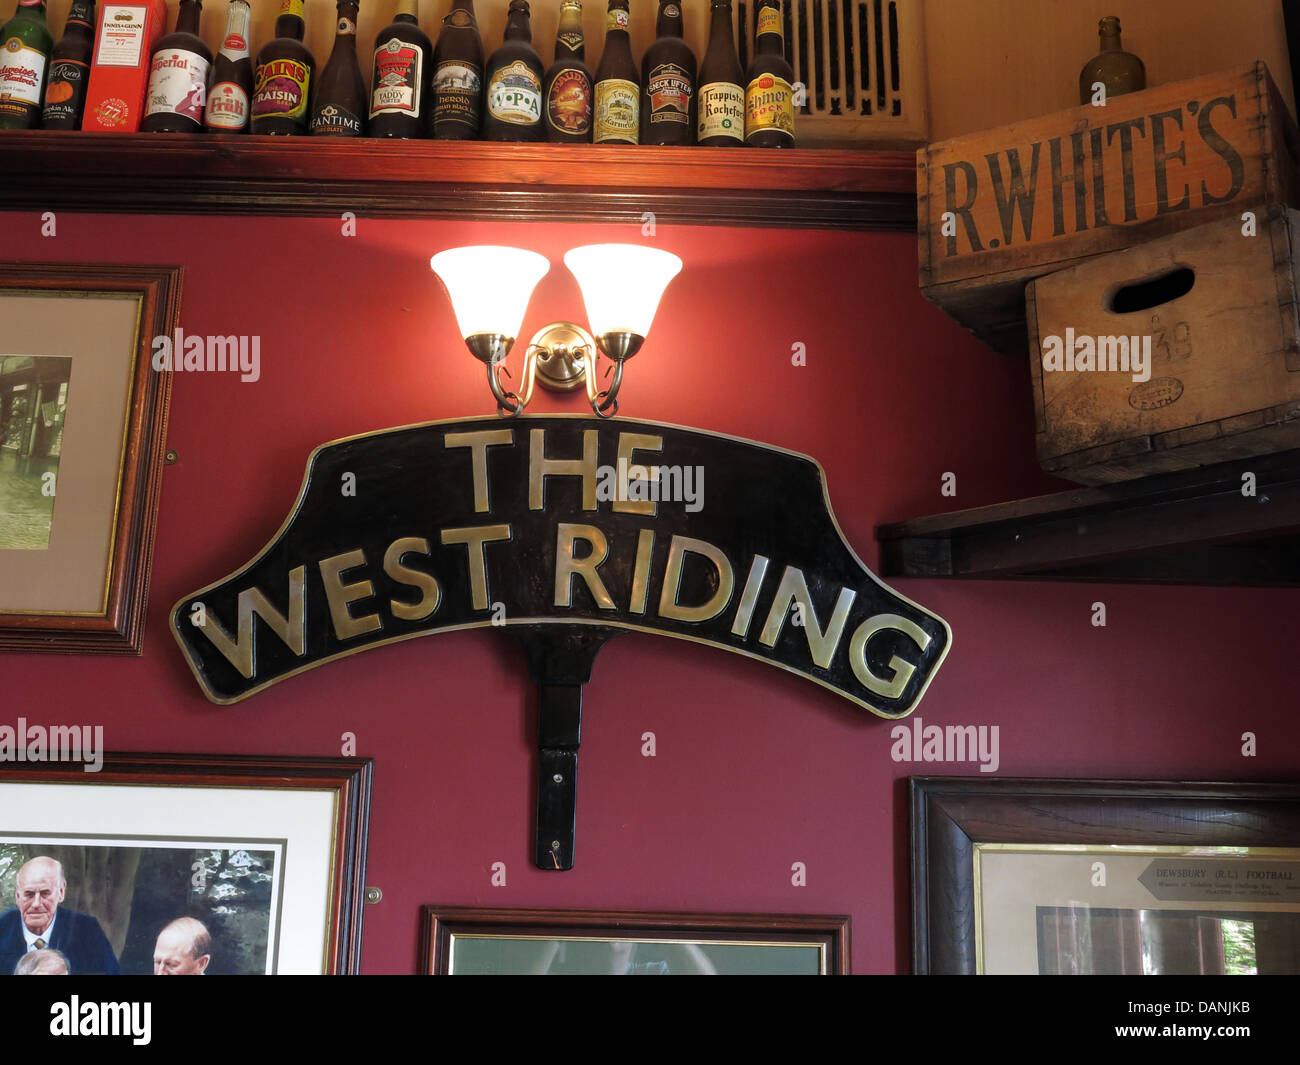 The,West,Riding,Pub,Dewsbury,Station,The,Ale,Train,from,Stalybridge,to,Batley,real,ales,pub,public,house,interior,inside,refreshment,rooms,room,West,yorkshire,sign,train,plate,railway,CAMRA,world,beers,waiting,room,platform,2,two,real,cask,ales,interior,inside,rwhites,R,Whites,bottles,box,gotonysmith The West Riding,Platform Two,Dewsbury Station,Wellington Road,Dewsbury,West Yorkshire. WF13 1HF WF131HF,Buy Pictures of,Buy Images Of